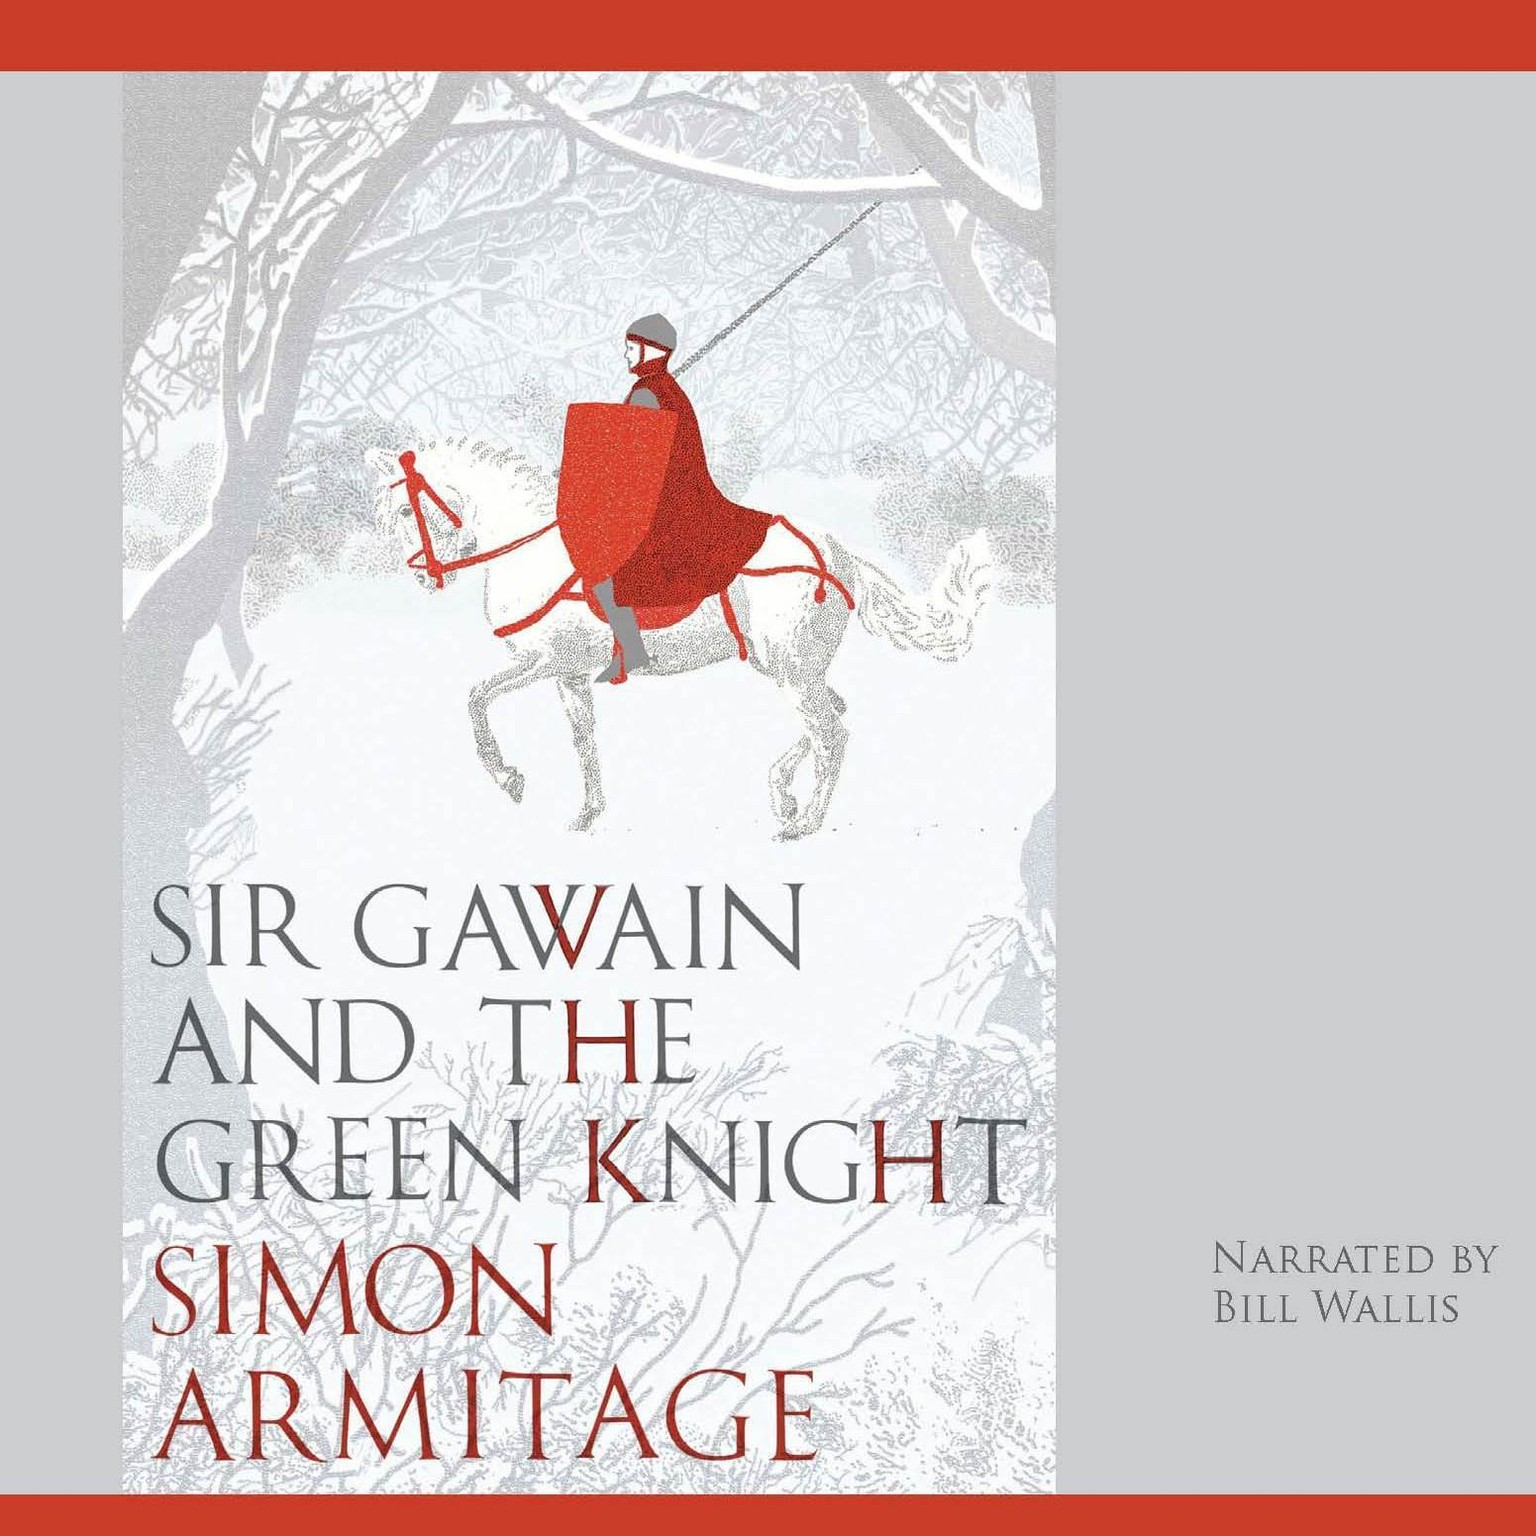 an analysis of the virtues depicted in the poem sir gawain and the green knight Sir gawain and the green knight he is depicted as a bodiless head with between the discription of the green knight riding into the hall in green and gold.